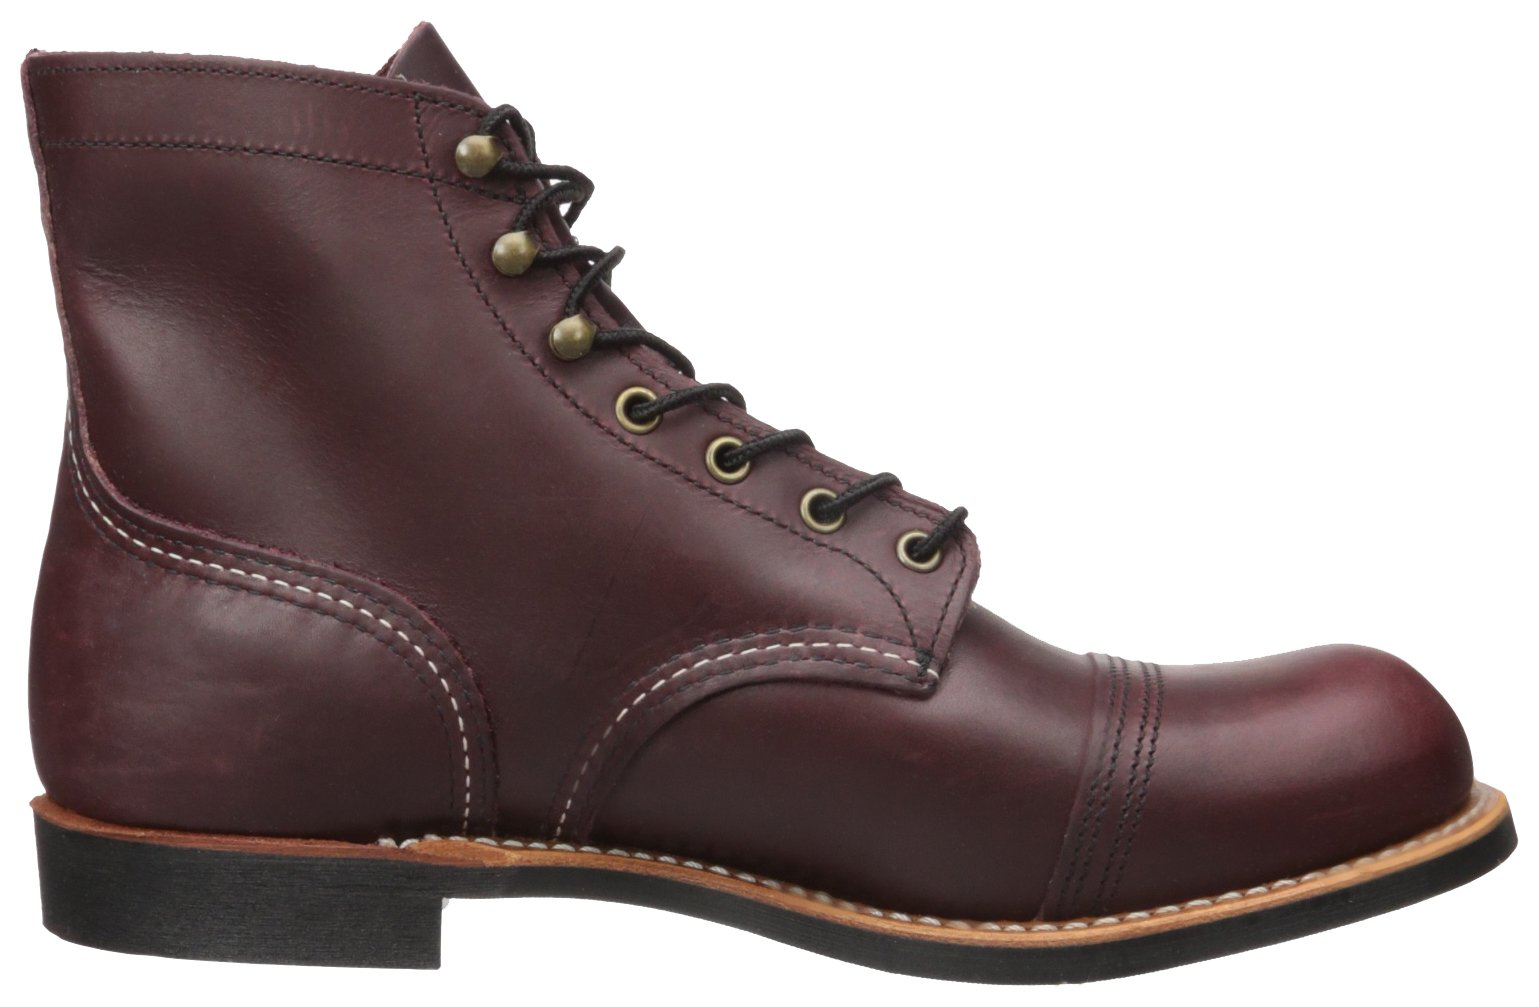 Red Wing Heritage Iron Ranger 6-Inch Boot, Oxblood Mesa, 8.5 D(M) US by Red Wing (Image #7)